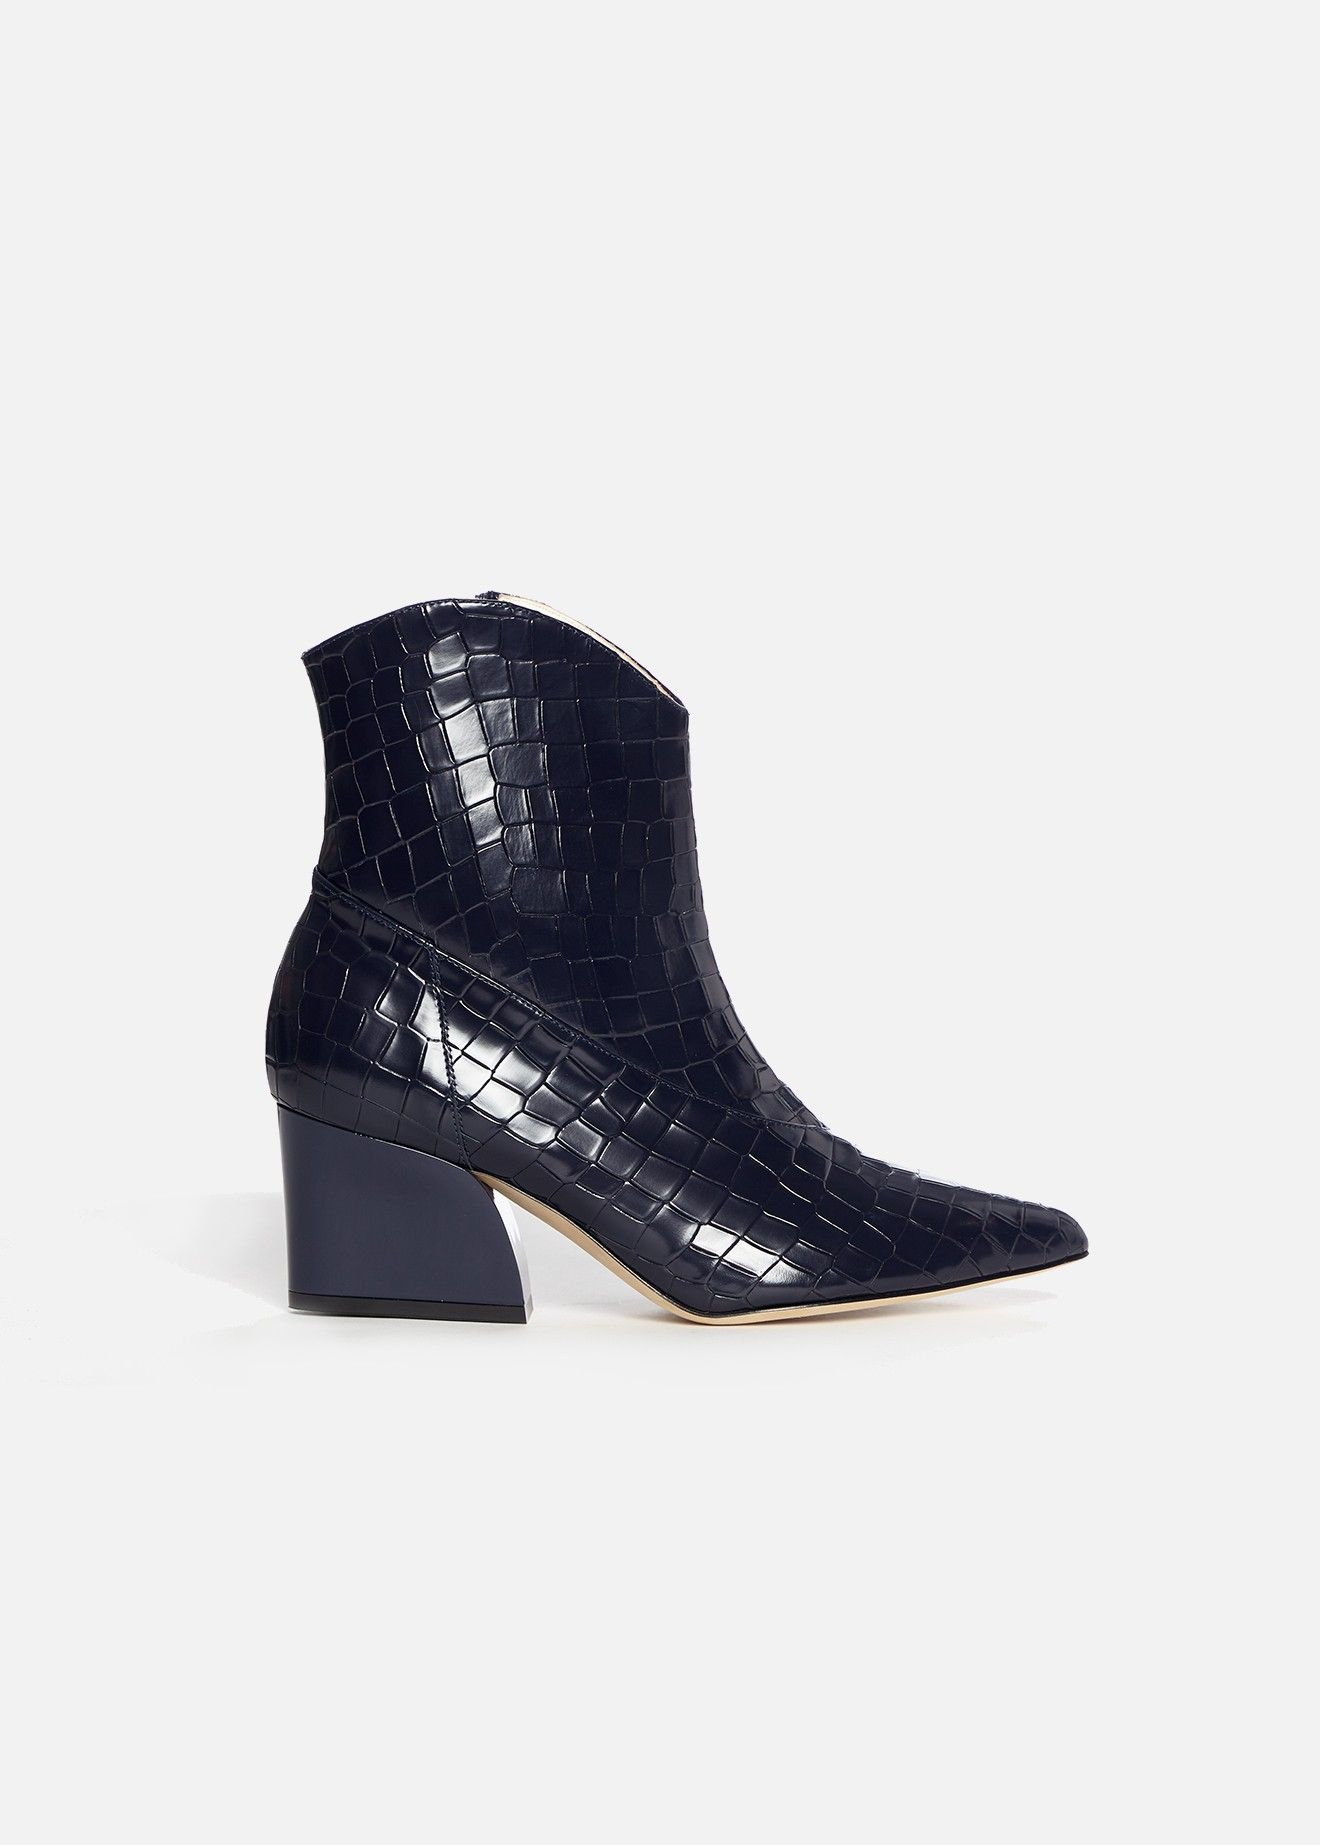 e792bf7874 These boots, made in Italy, receive an update in an elevated embossed croc.